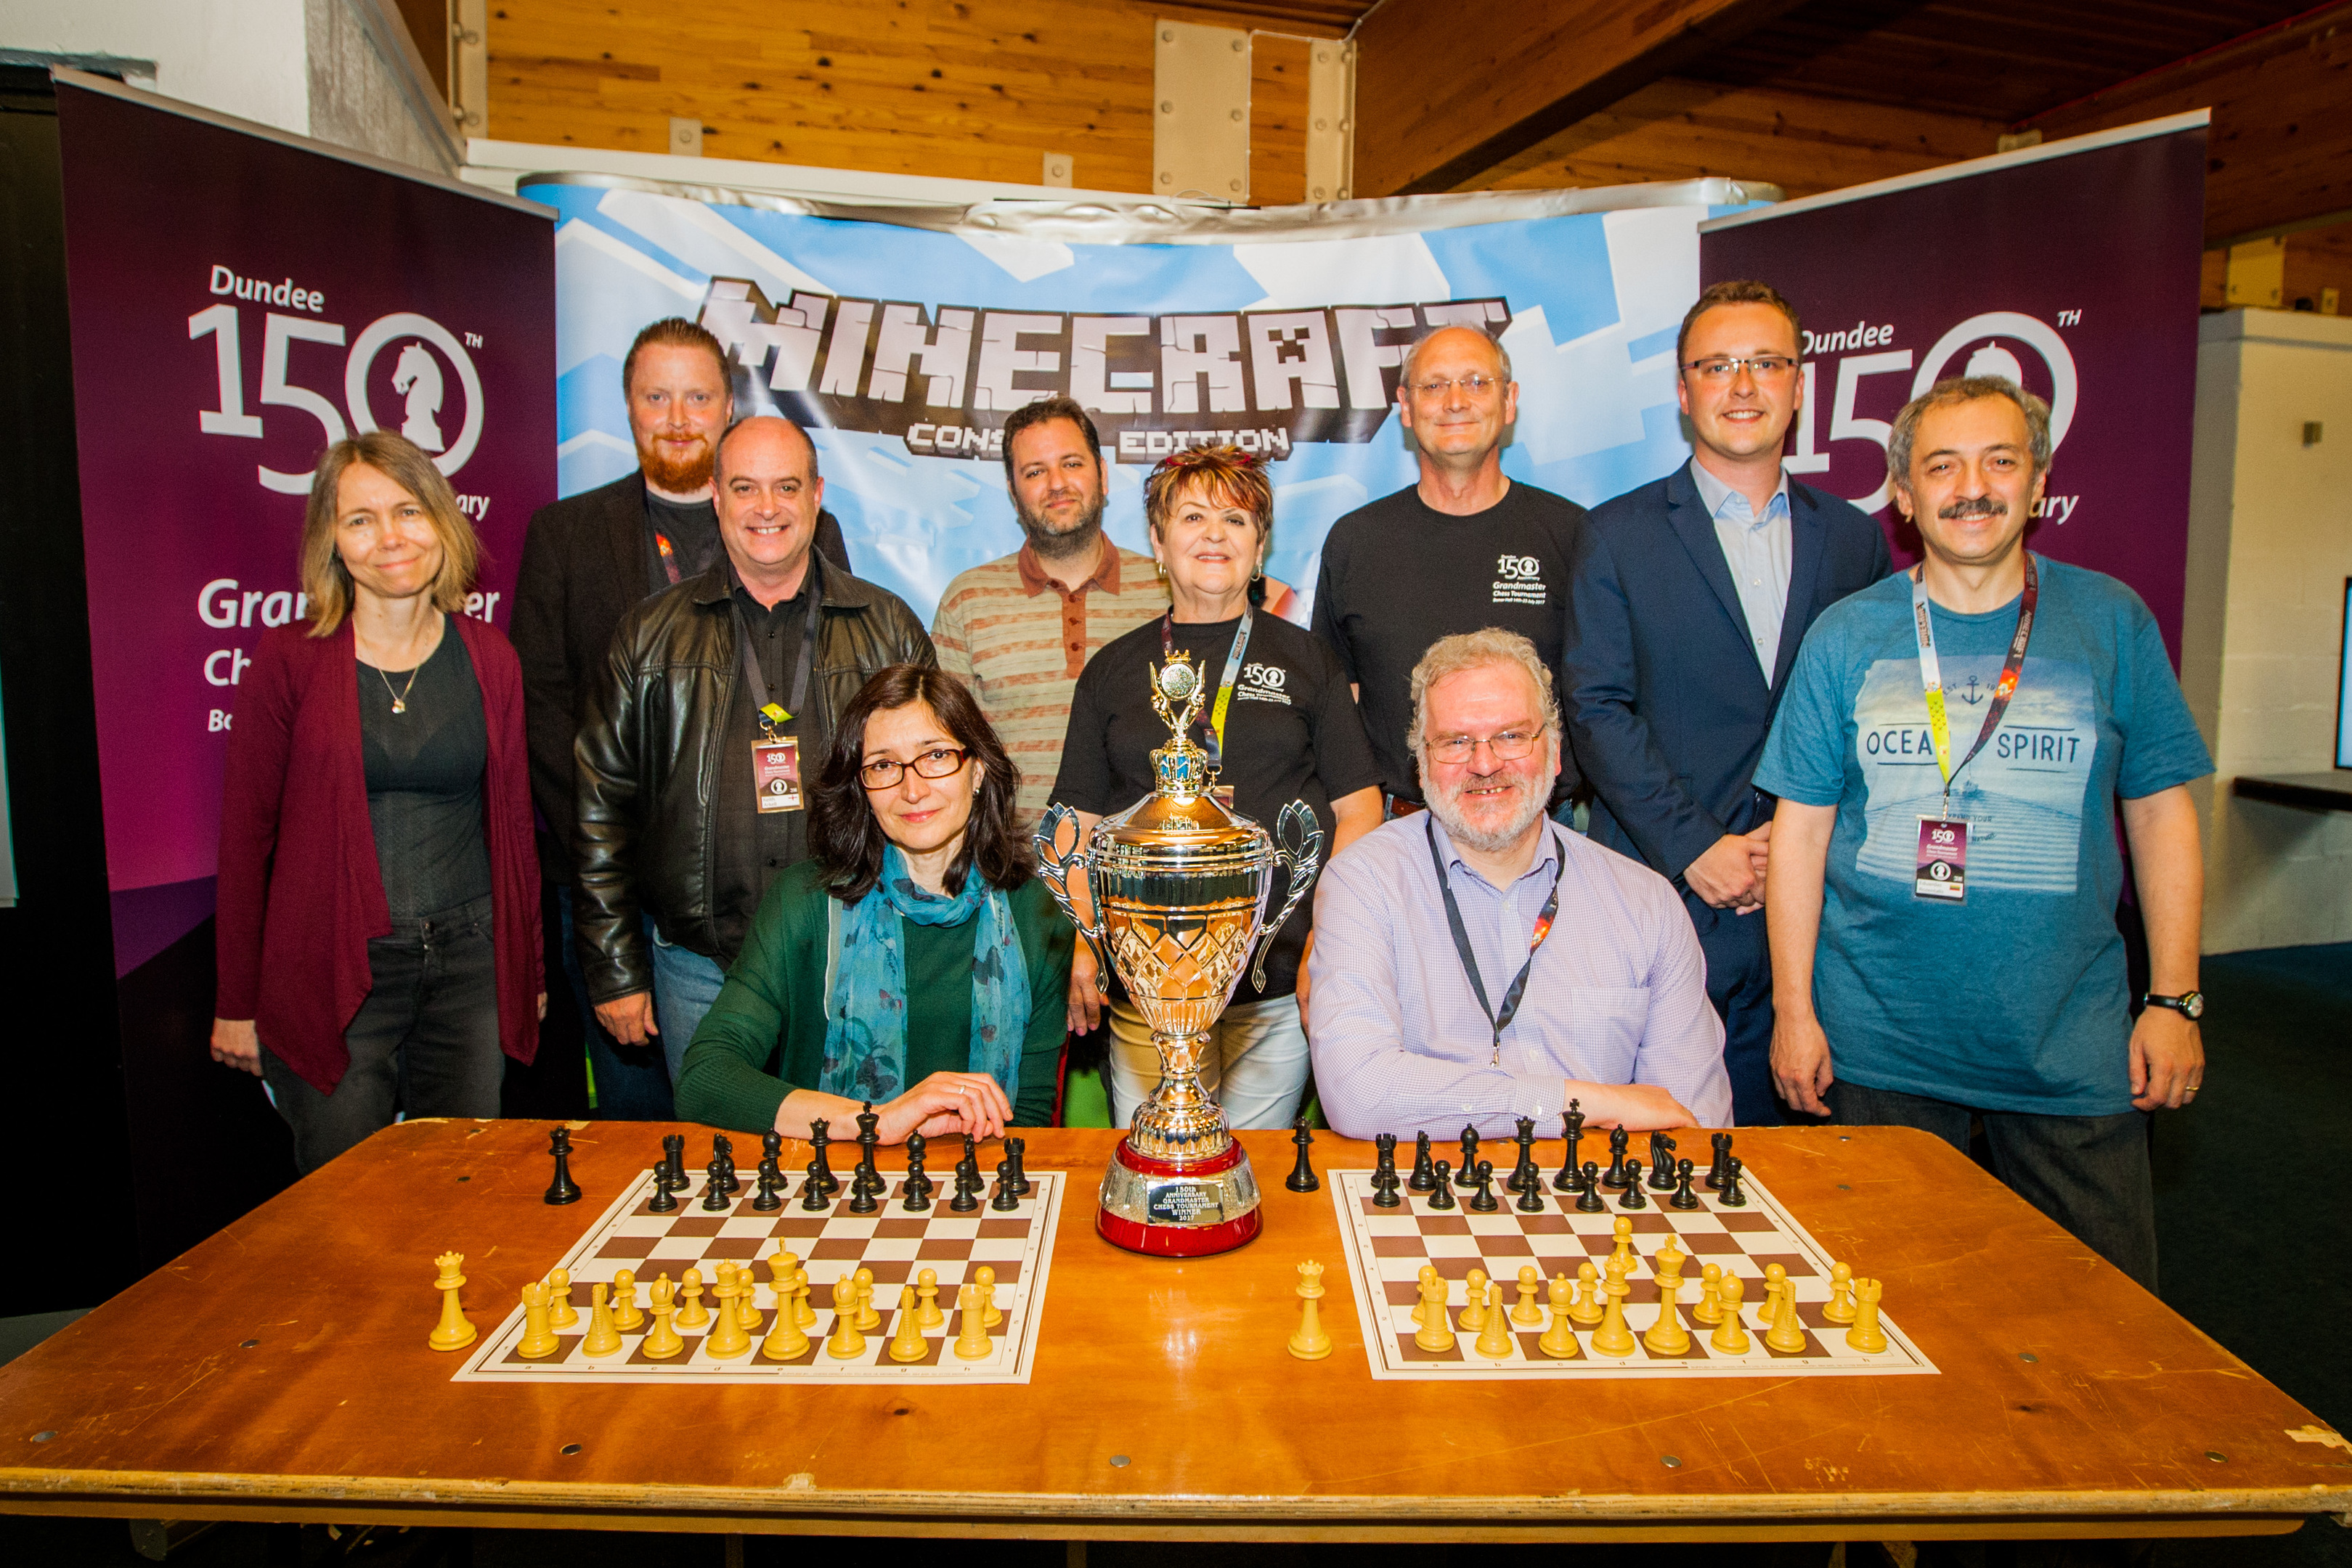 Event organiser Jean Chalmers in the centre alongside most of the Chess Grandmasters playing in the event